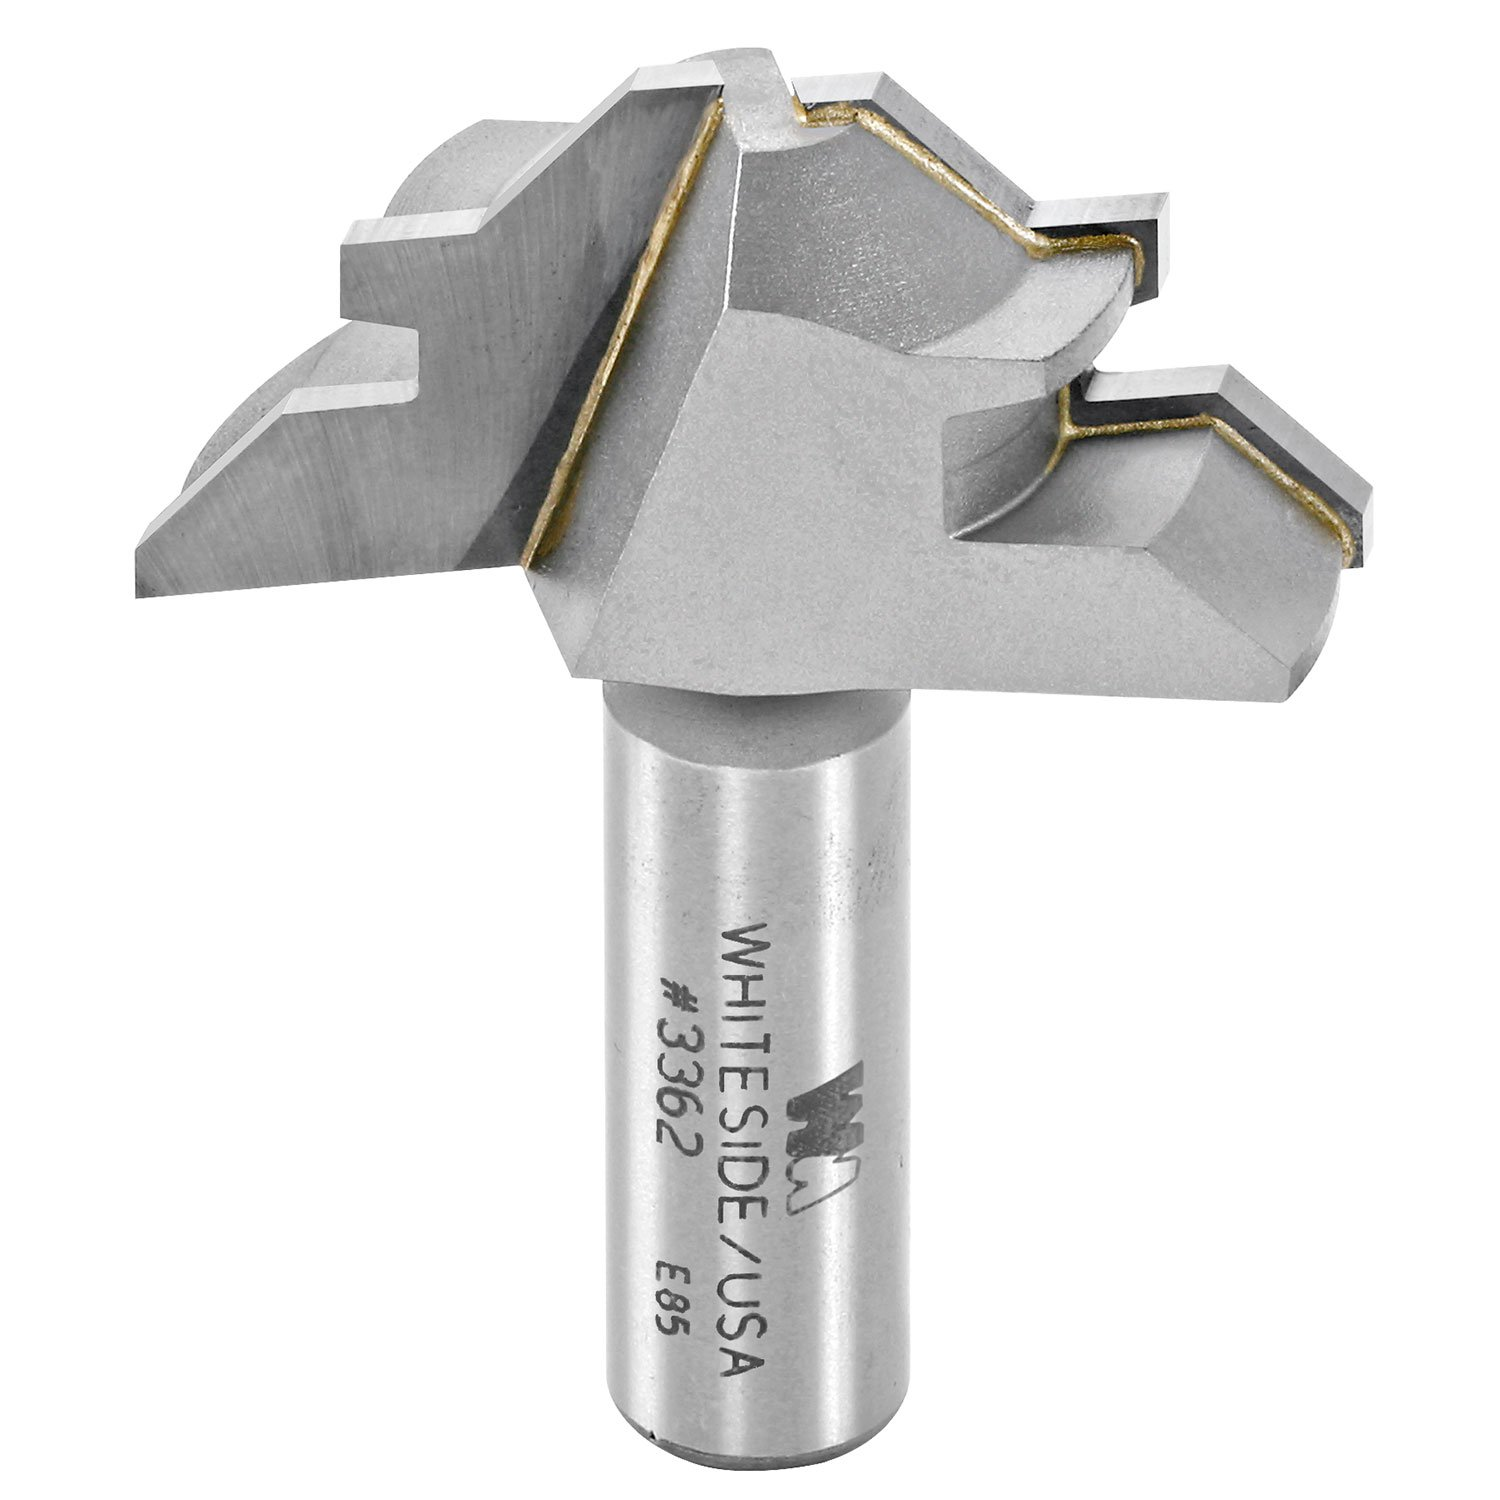 Whiteside Router Bits 3362 45-Degree Lock Miter with 2-Inch Large Diameter and 1/2-Inch to 3/4-Inch Cutting Length by Whiteside Router Bits